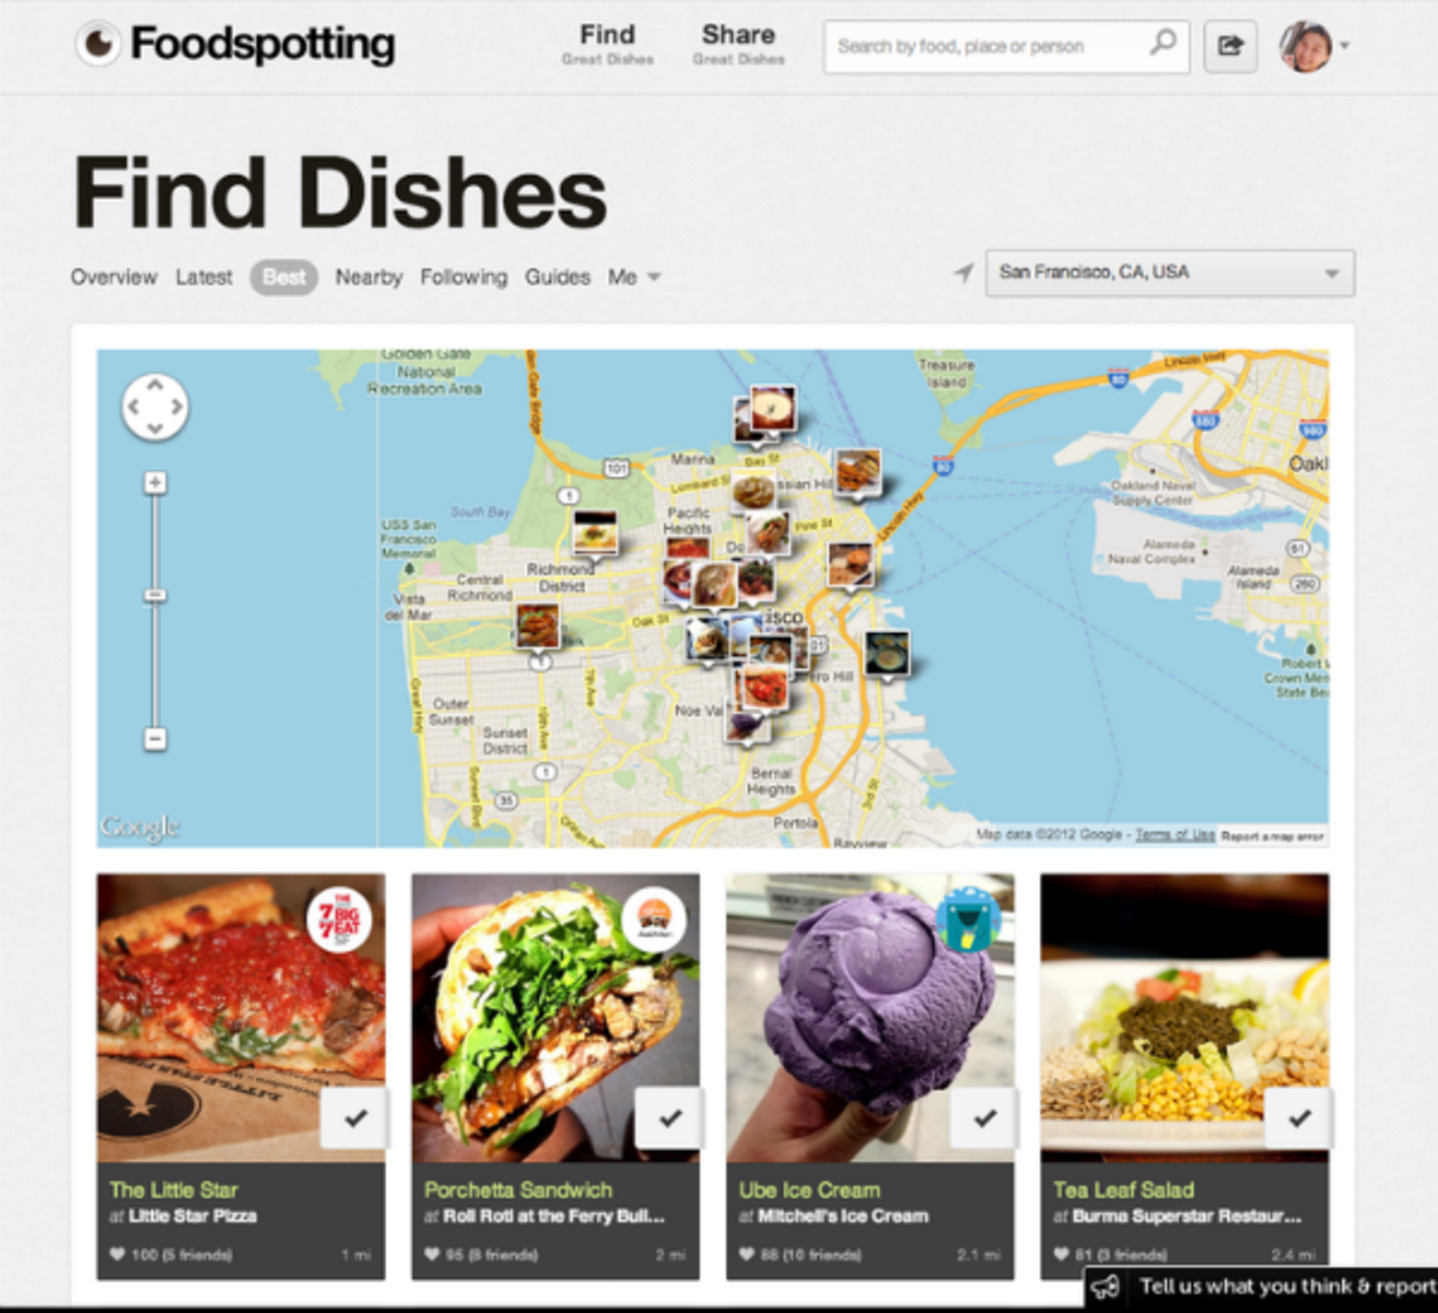 Foodspotting To Find Fast Food Restaurants Near You